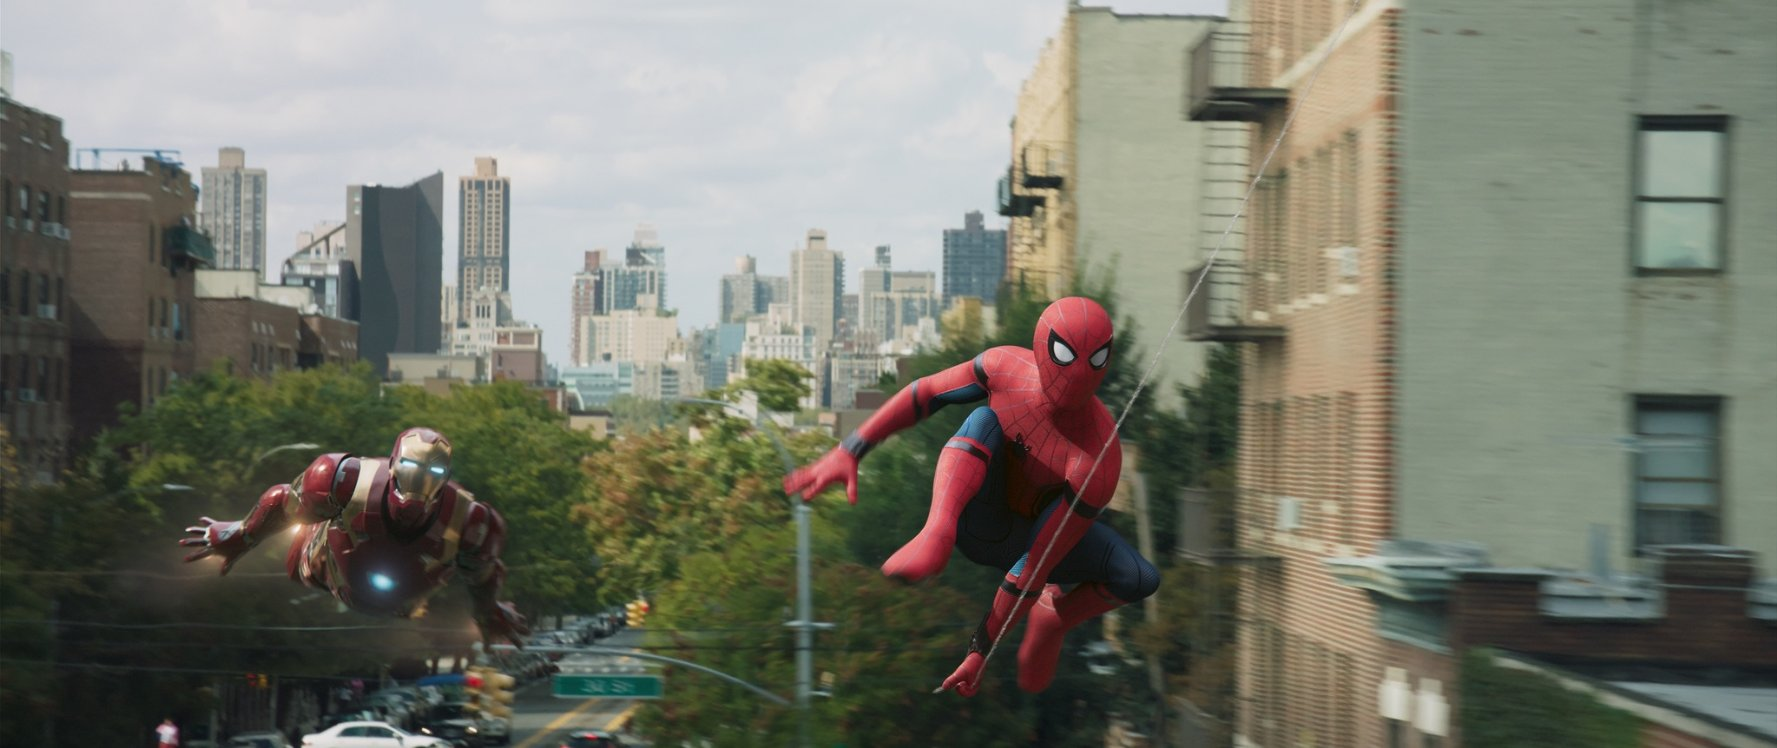 Spider-Man: Homecoming Watch Here For Free